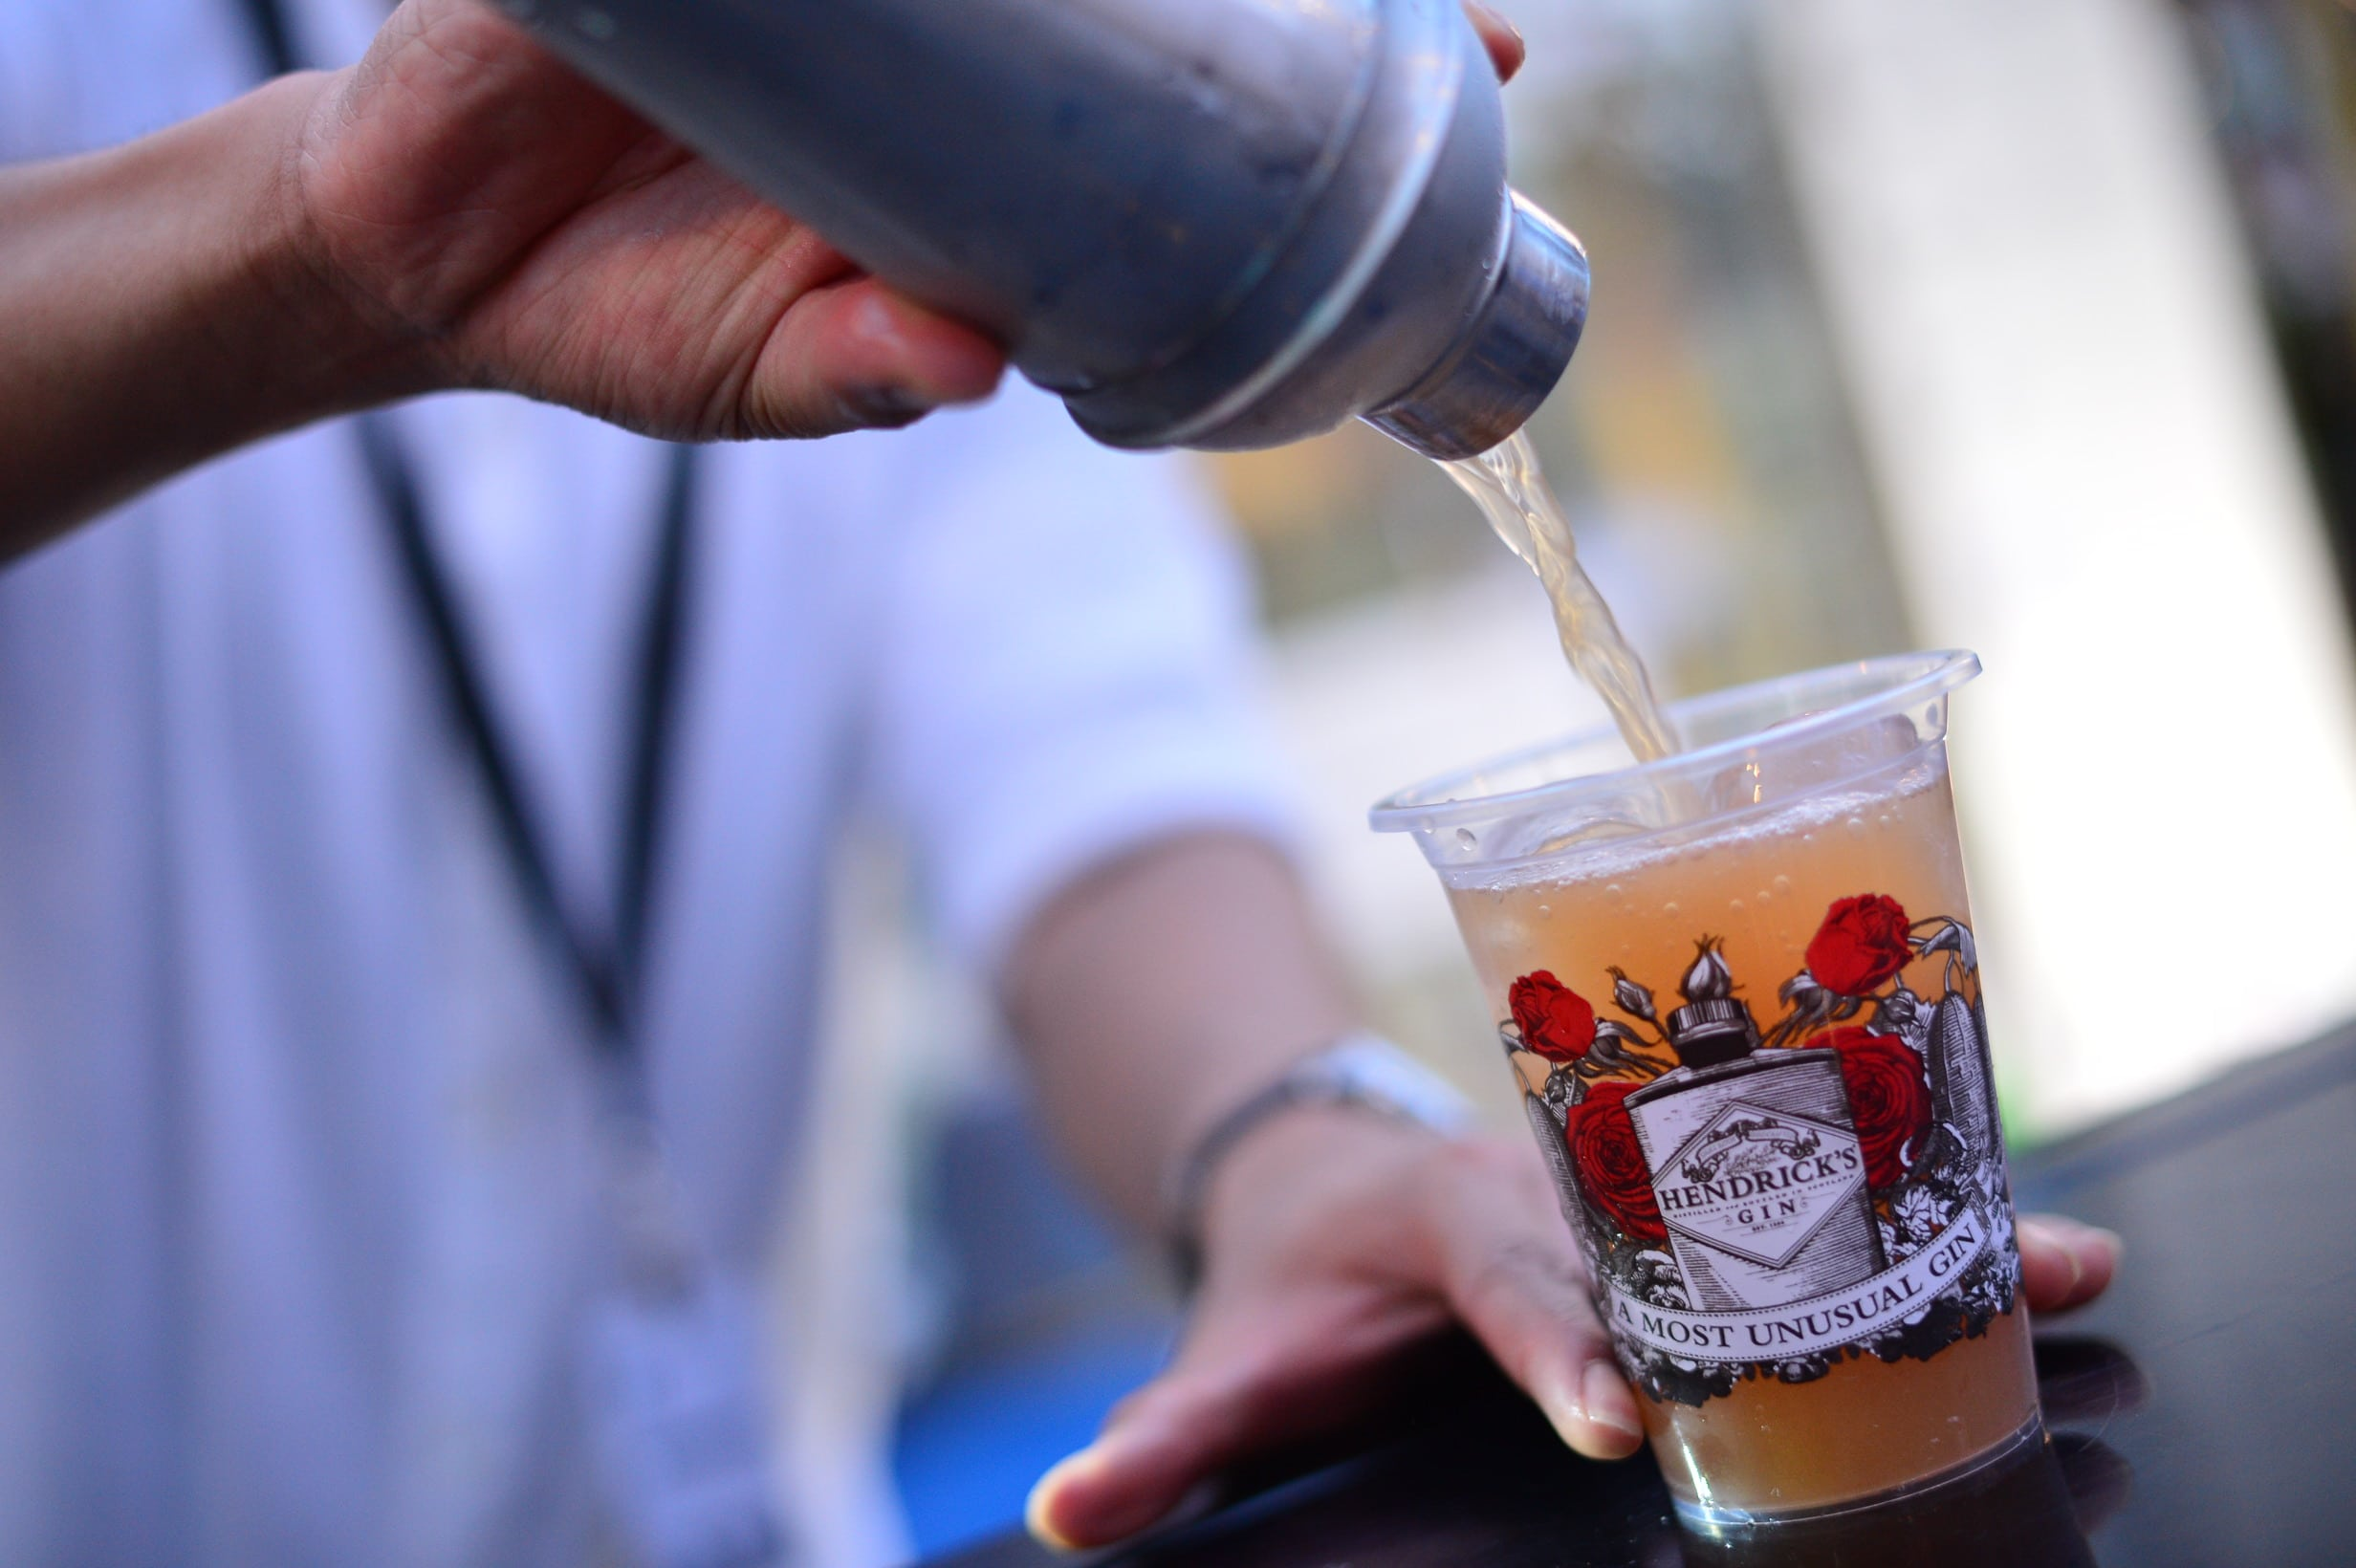 Singapore Cocktail Festival is set to return from 10 to 18 May 2019